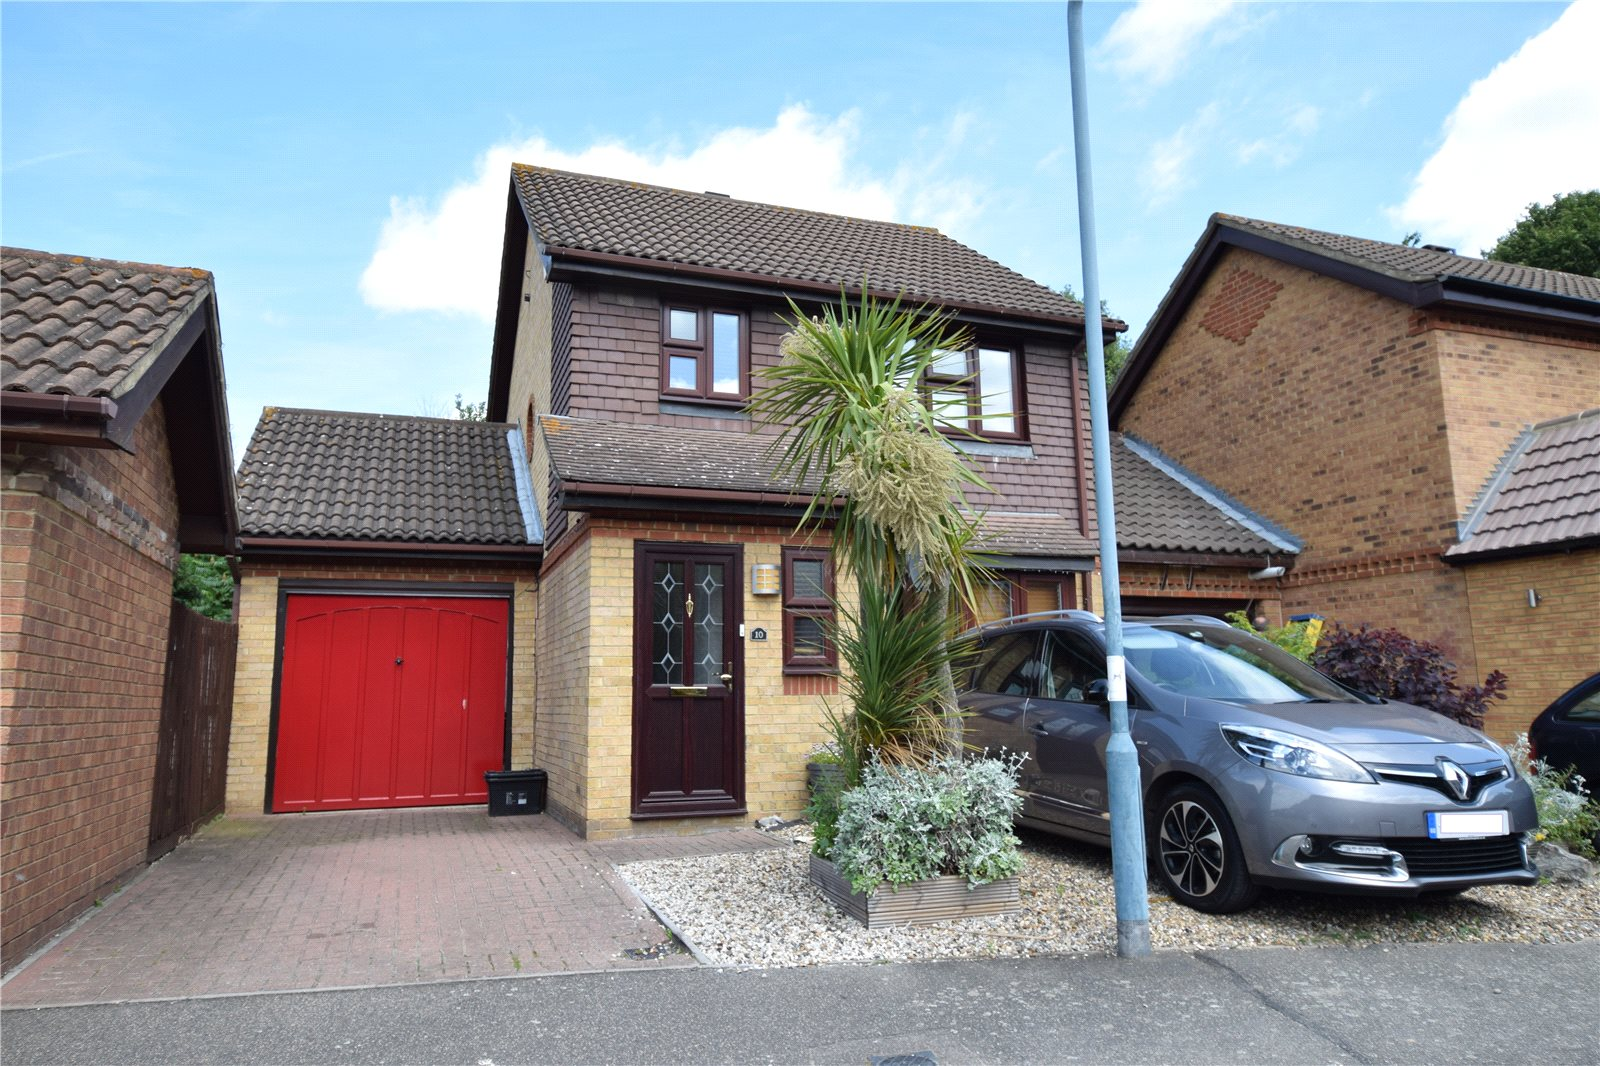 Maritime Close, Greenhithe, Kent, DA9